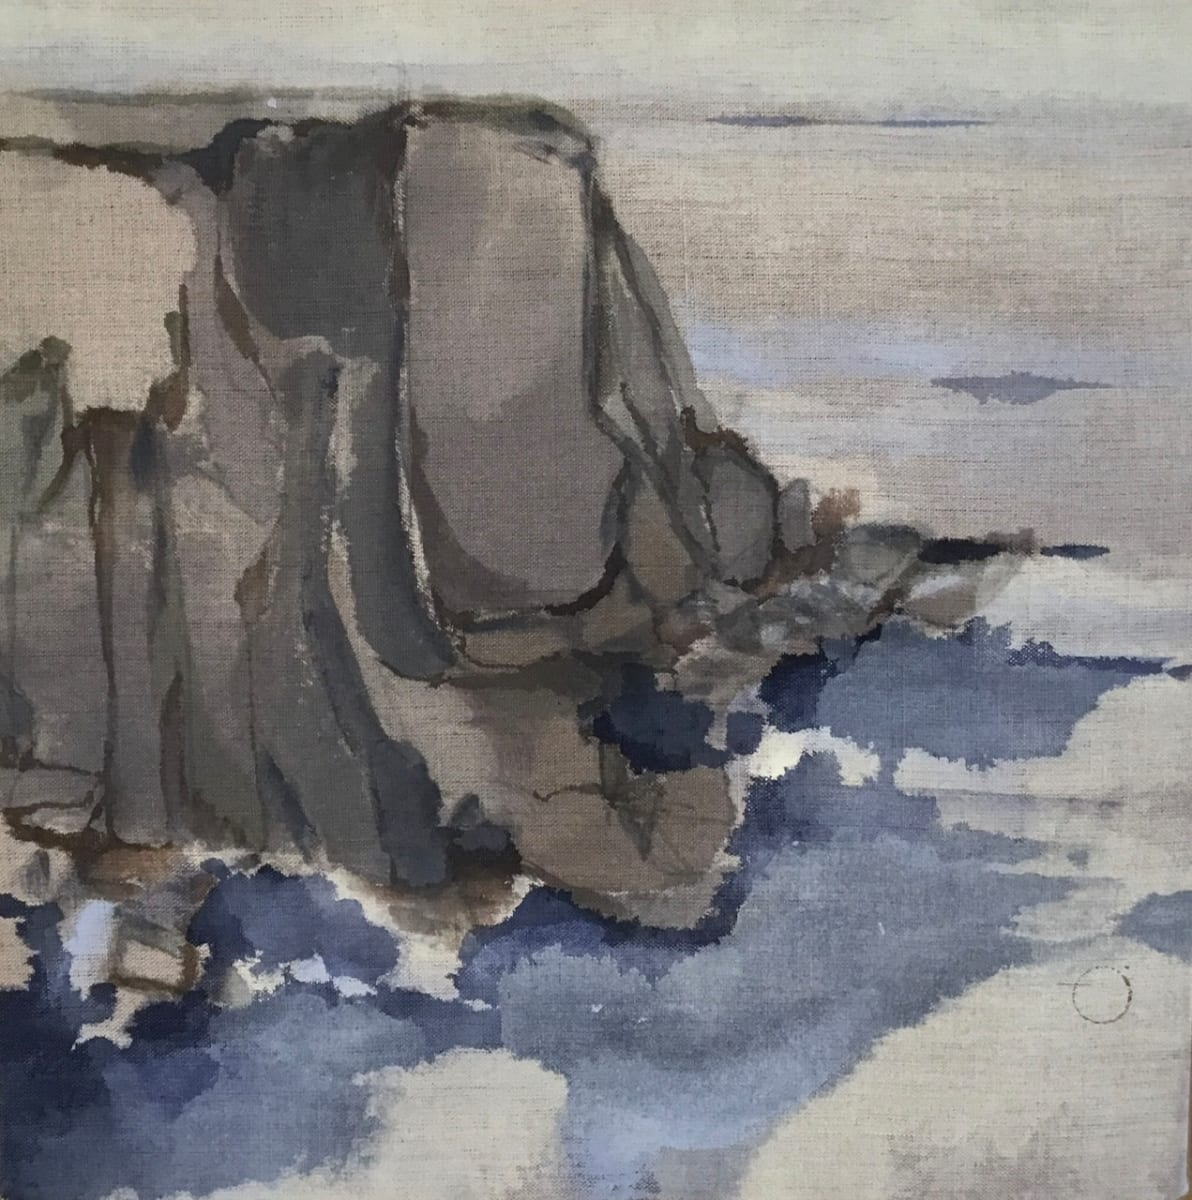 Untitled, Verso, 7 (Cliff Edge) by Barbara Houston